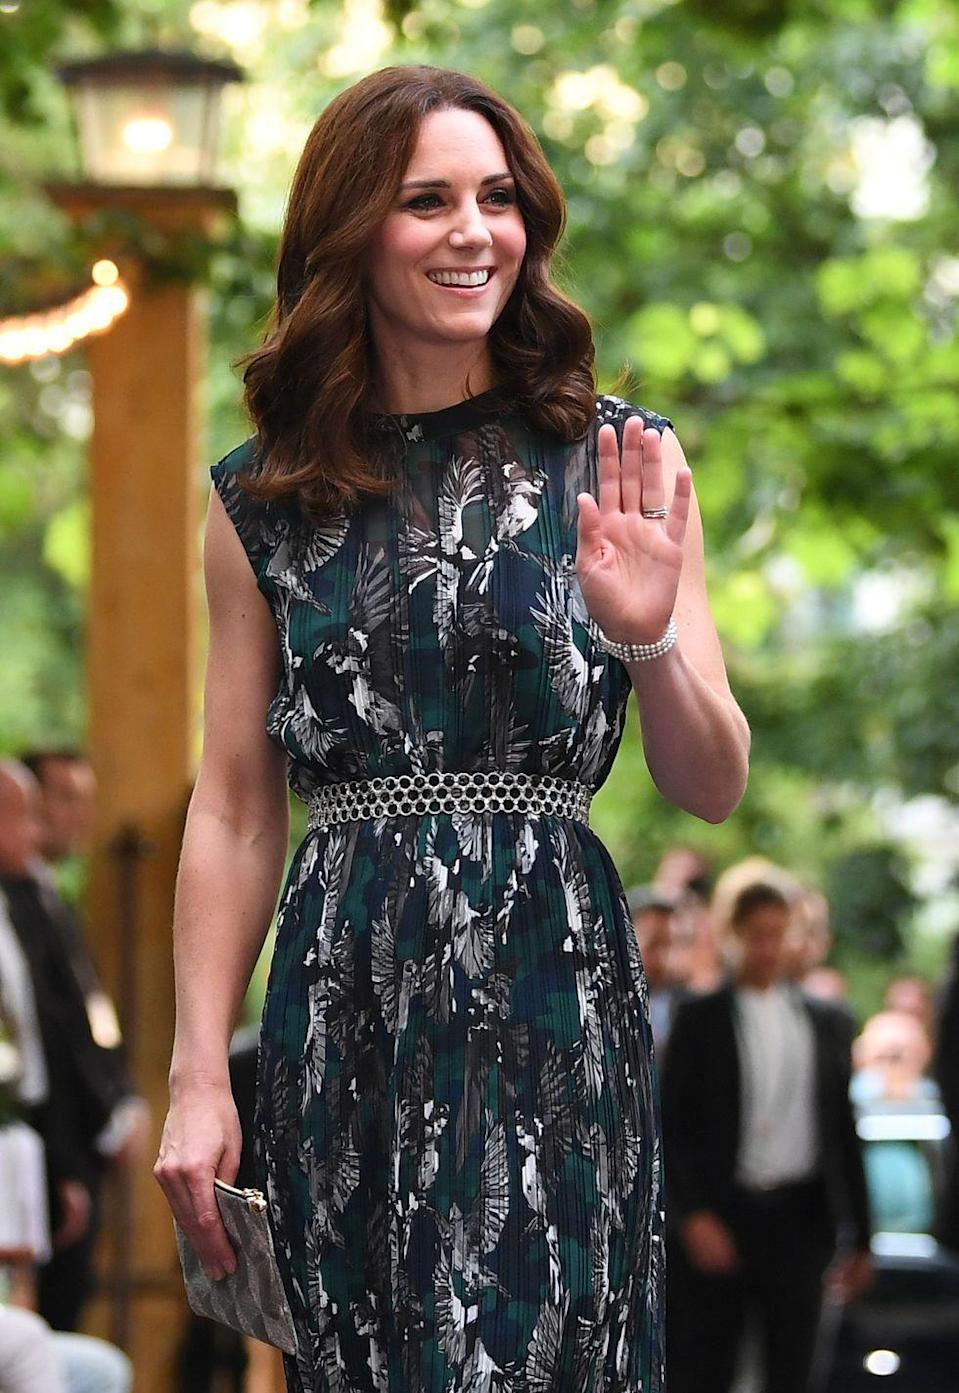 "<p><em>Marie Claire UK</em> says <a href=""https://www.marieclaire.co.uk/news/fashion-news/hidden-detail-kate-middleton-berlin-dress-524709#LLhhfaMlj6qsTjha.99"" rel=""nofollow noopener"" target=""_blank"" data-ylk=""slk:the same goes for the striking eagles in flight dress"" class=""link rapid-noclick-resp"">the same goes for the striking eagles in flight dress</a> that Kate wore her last night in Germany in 2017, where eagles are the national bird. The dress also was created by a German designer. </p>"